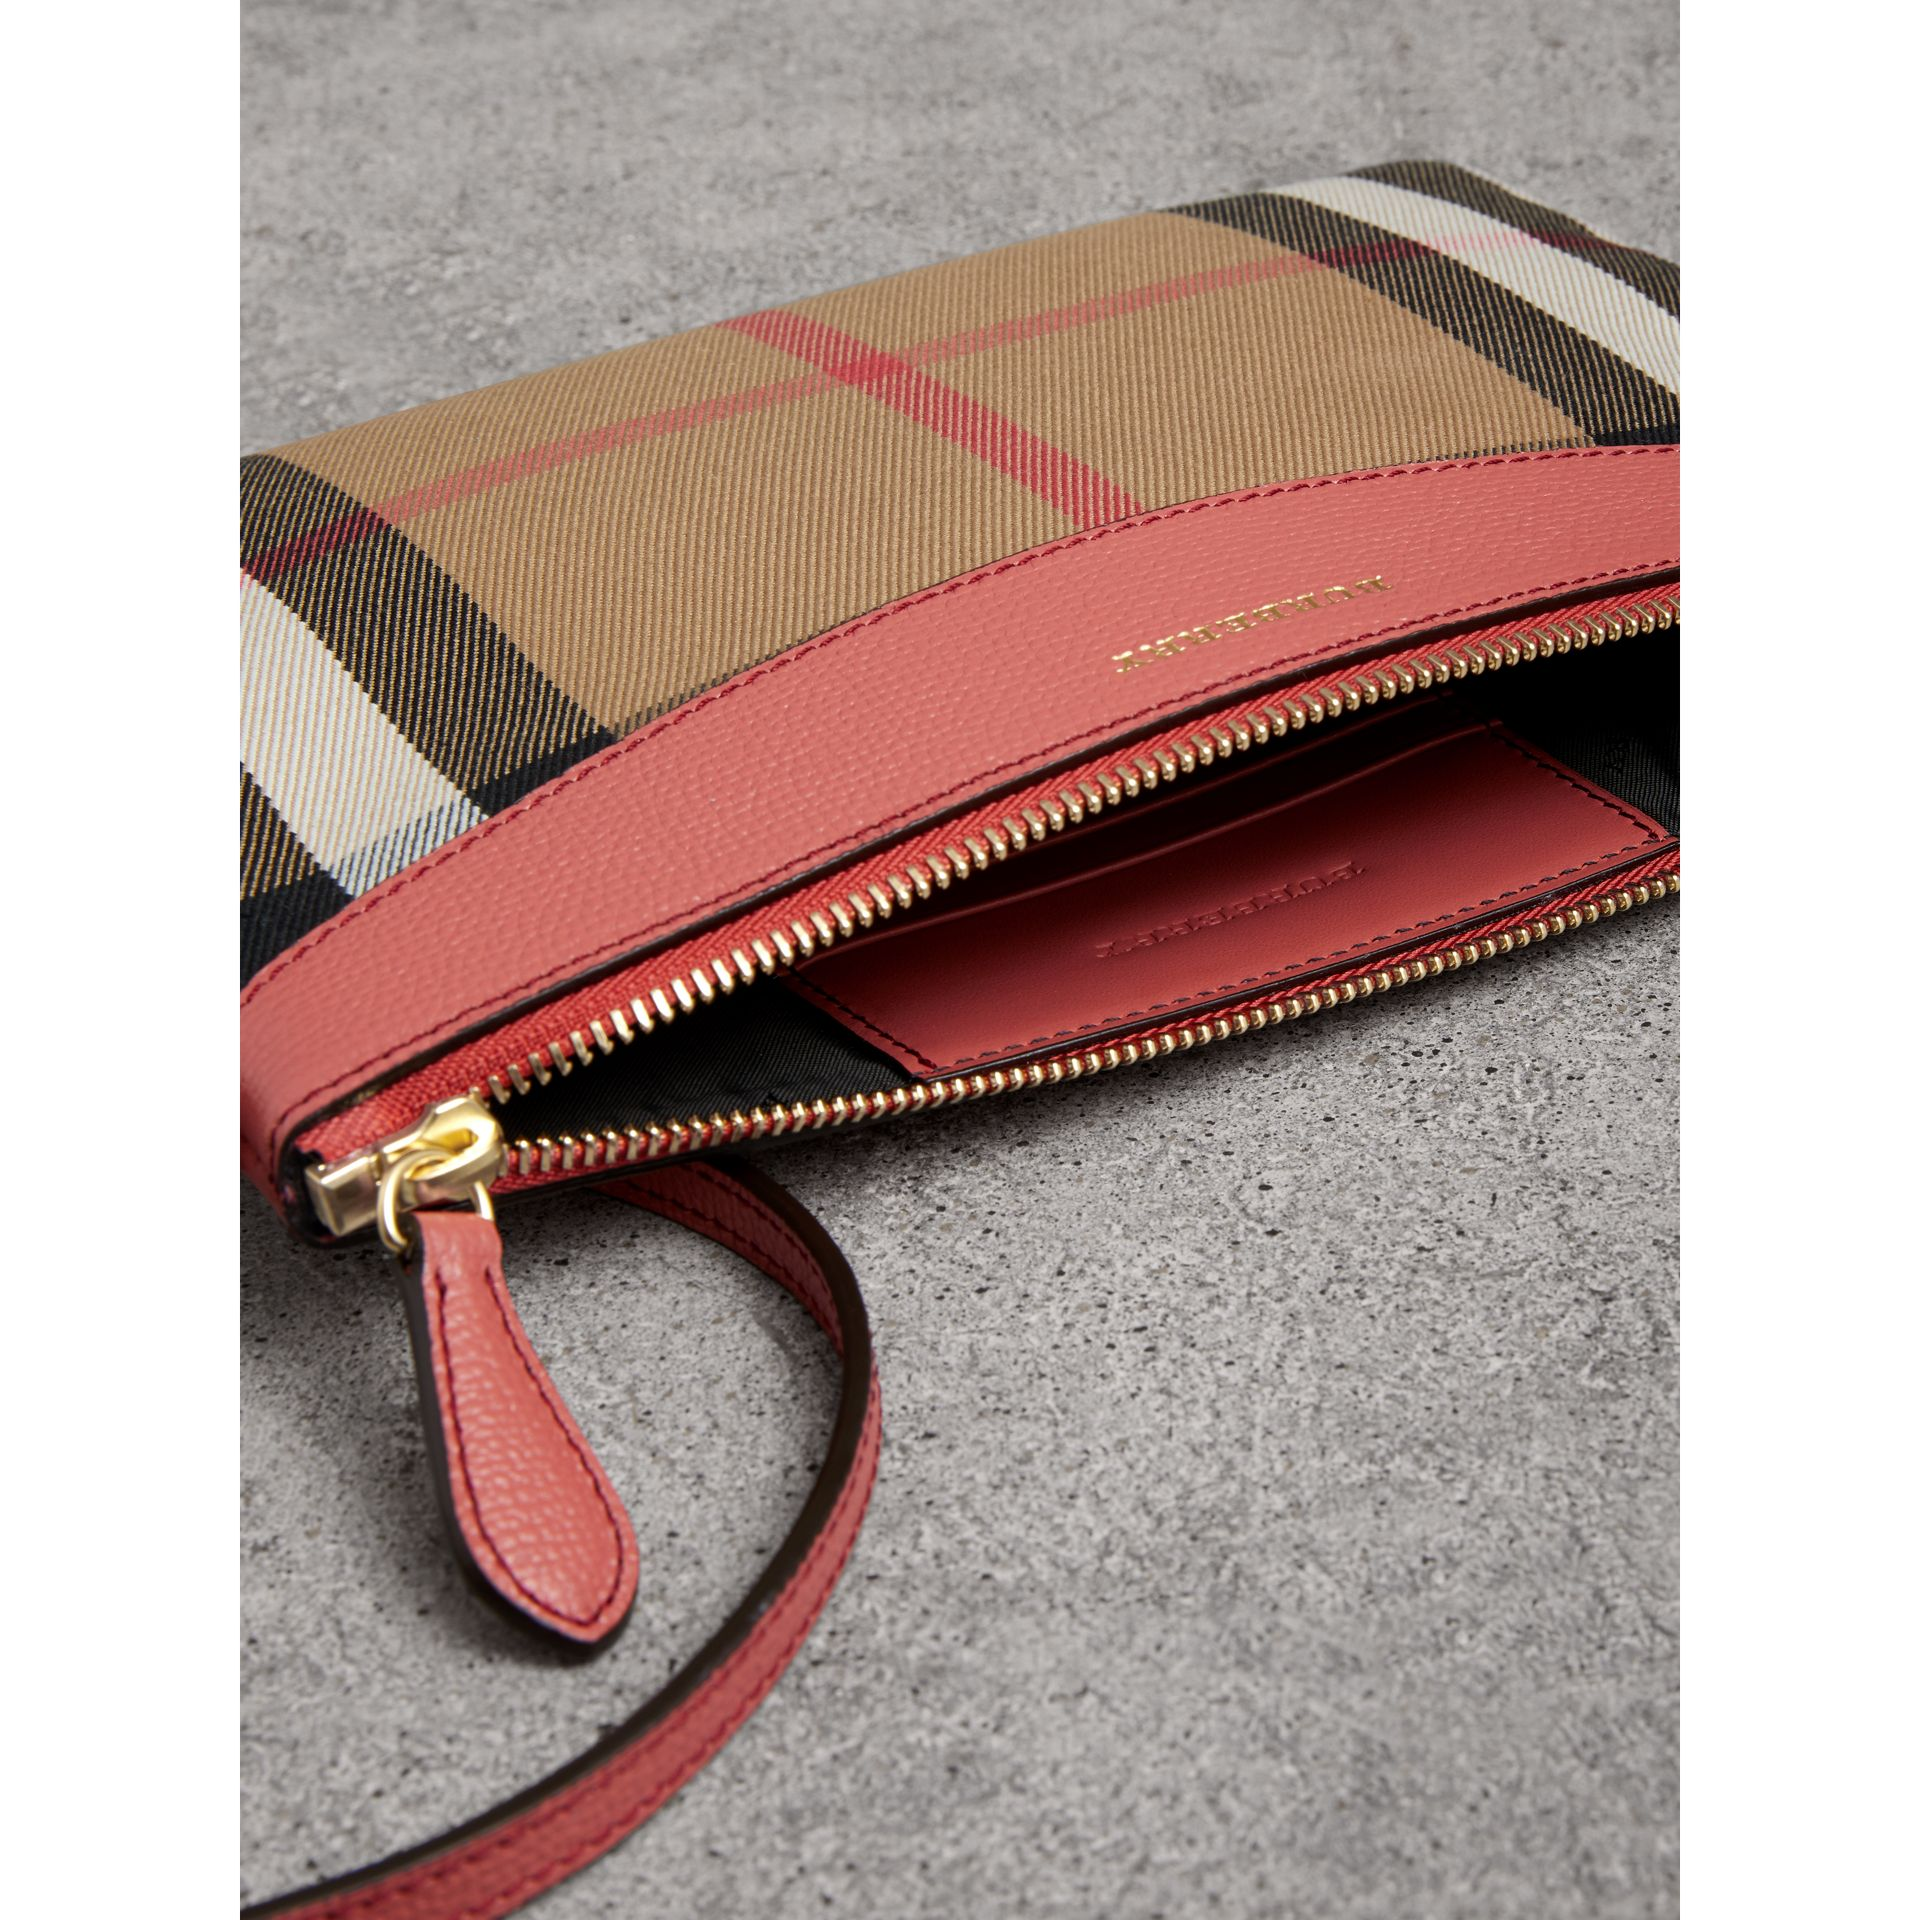 House Check and Leather Clutch Bag in Cinnamon Red - Women | Burberry Australia - gallery image 5